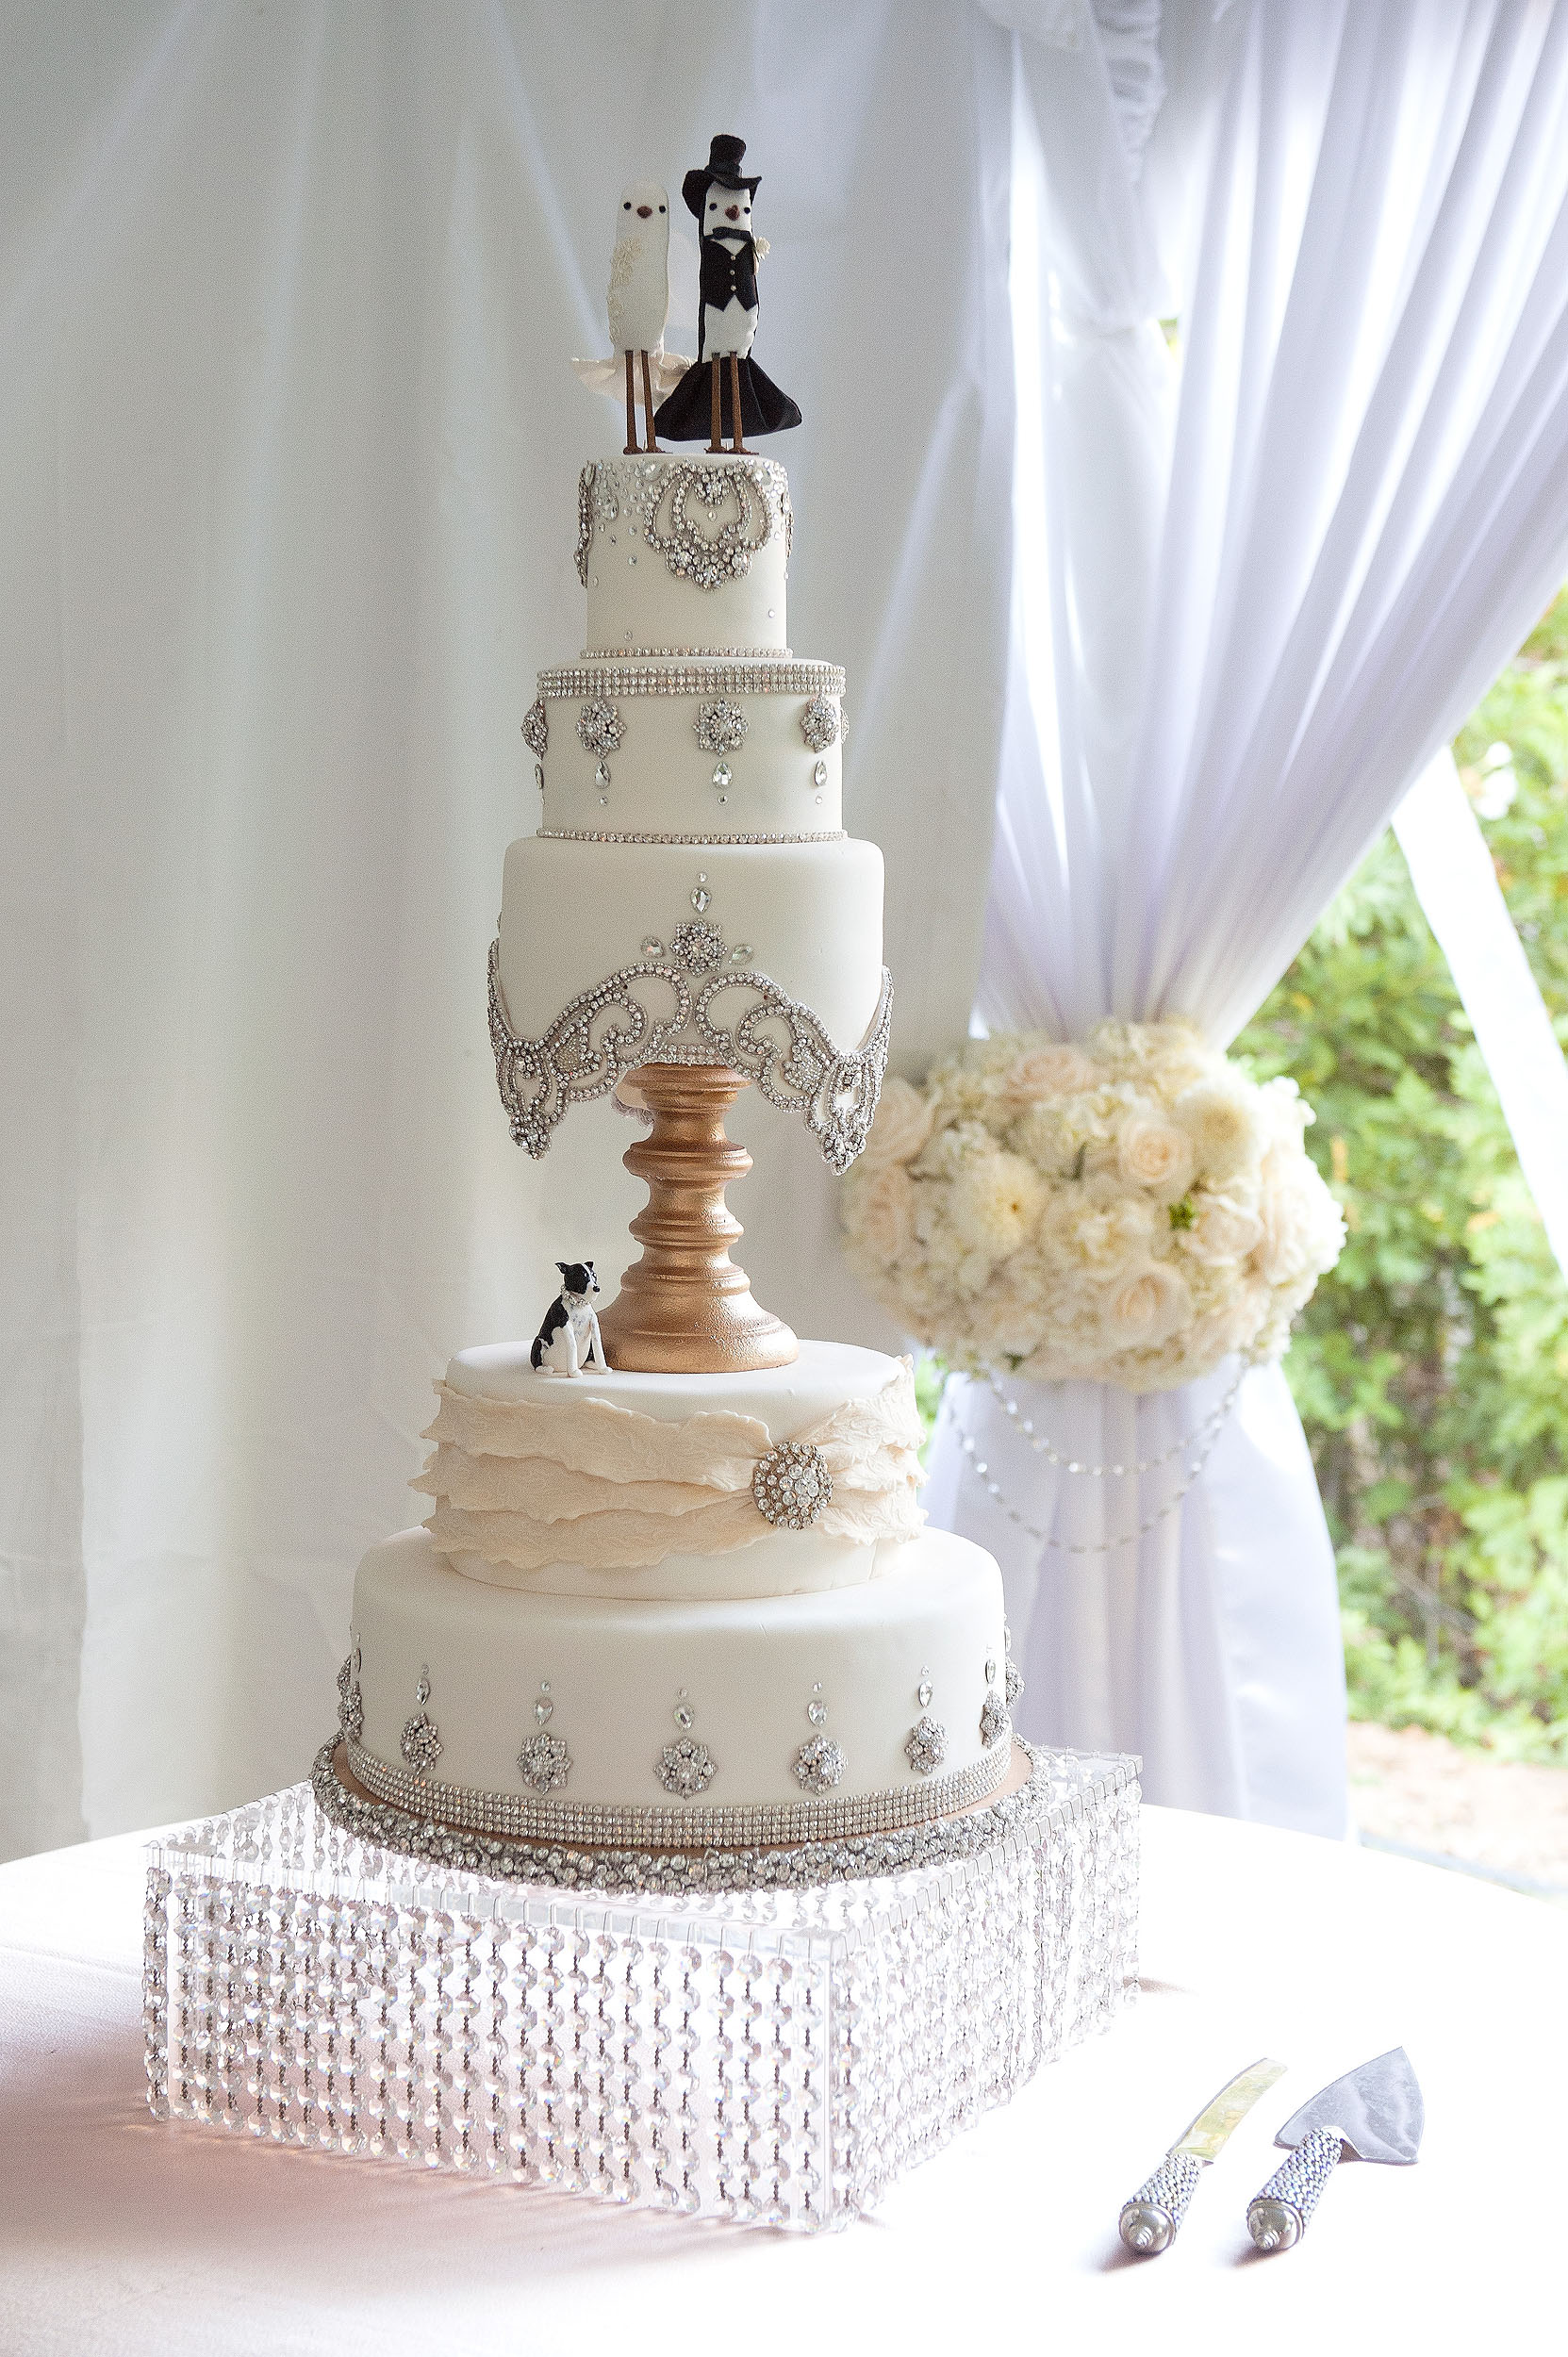 Multi-layer wedding cake with bride and groom topper and dog.